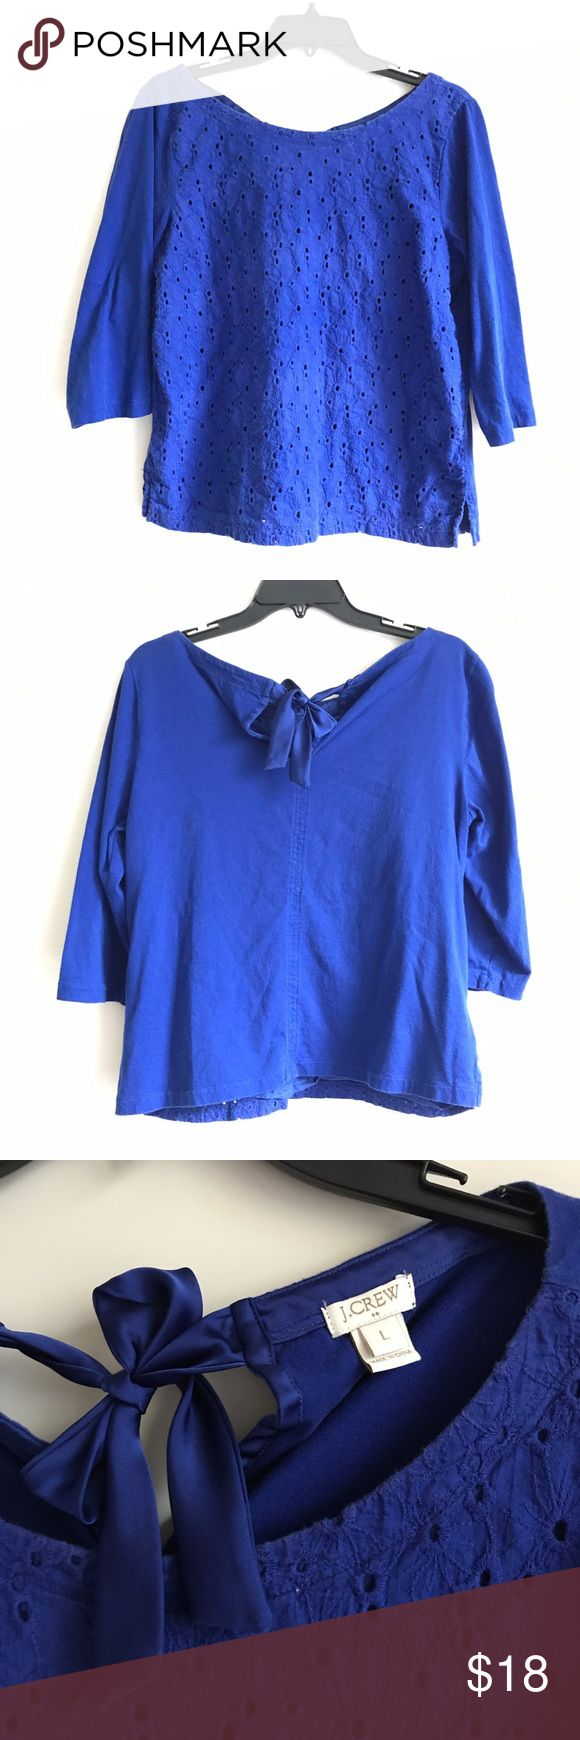 J. Crew royal blue eyelet shirt Royal blue three quarter length Blouse, with an eyelet design on the front. From Jcrew. Has a beautiful silk bow design in the back. Size large. J. Crew Tops Blouses